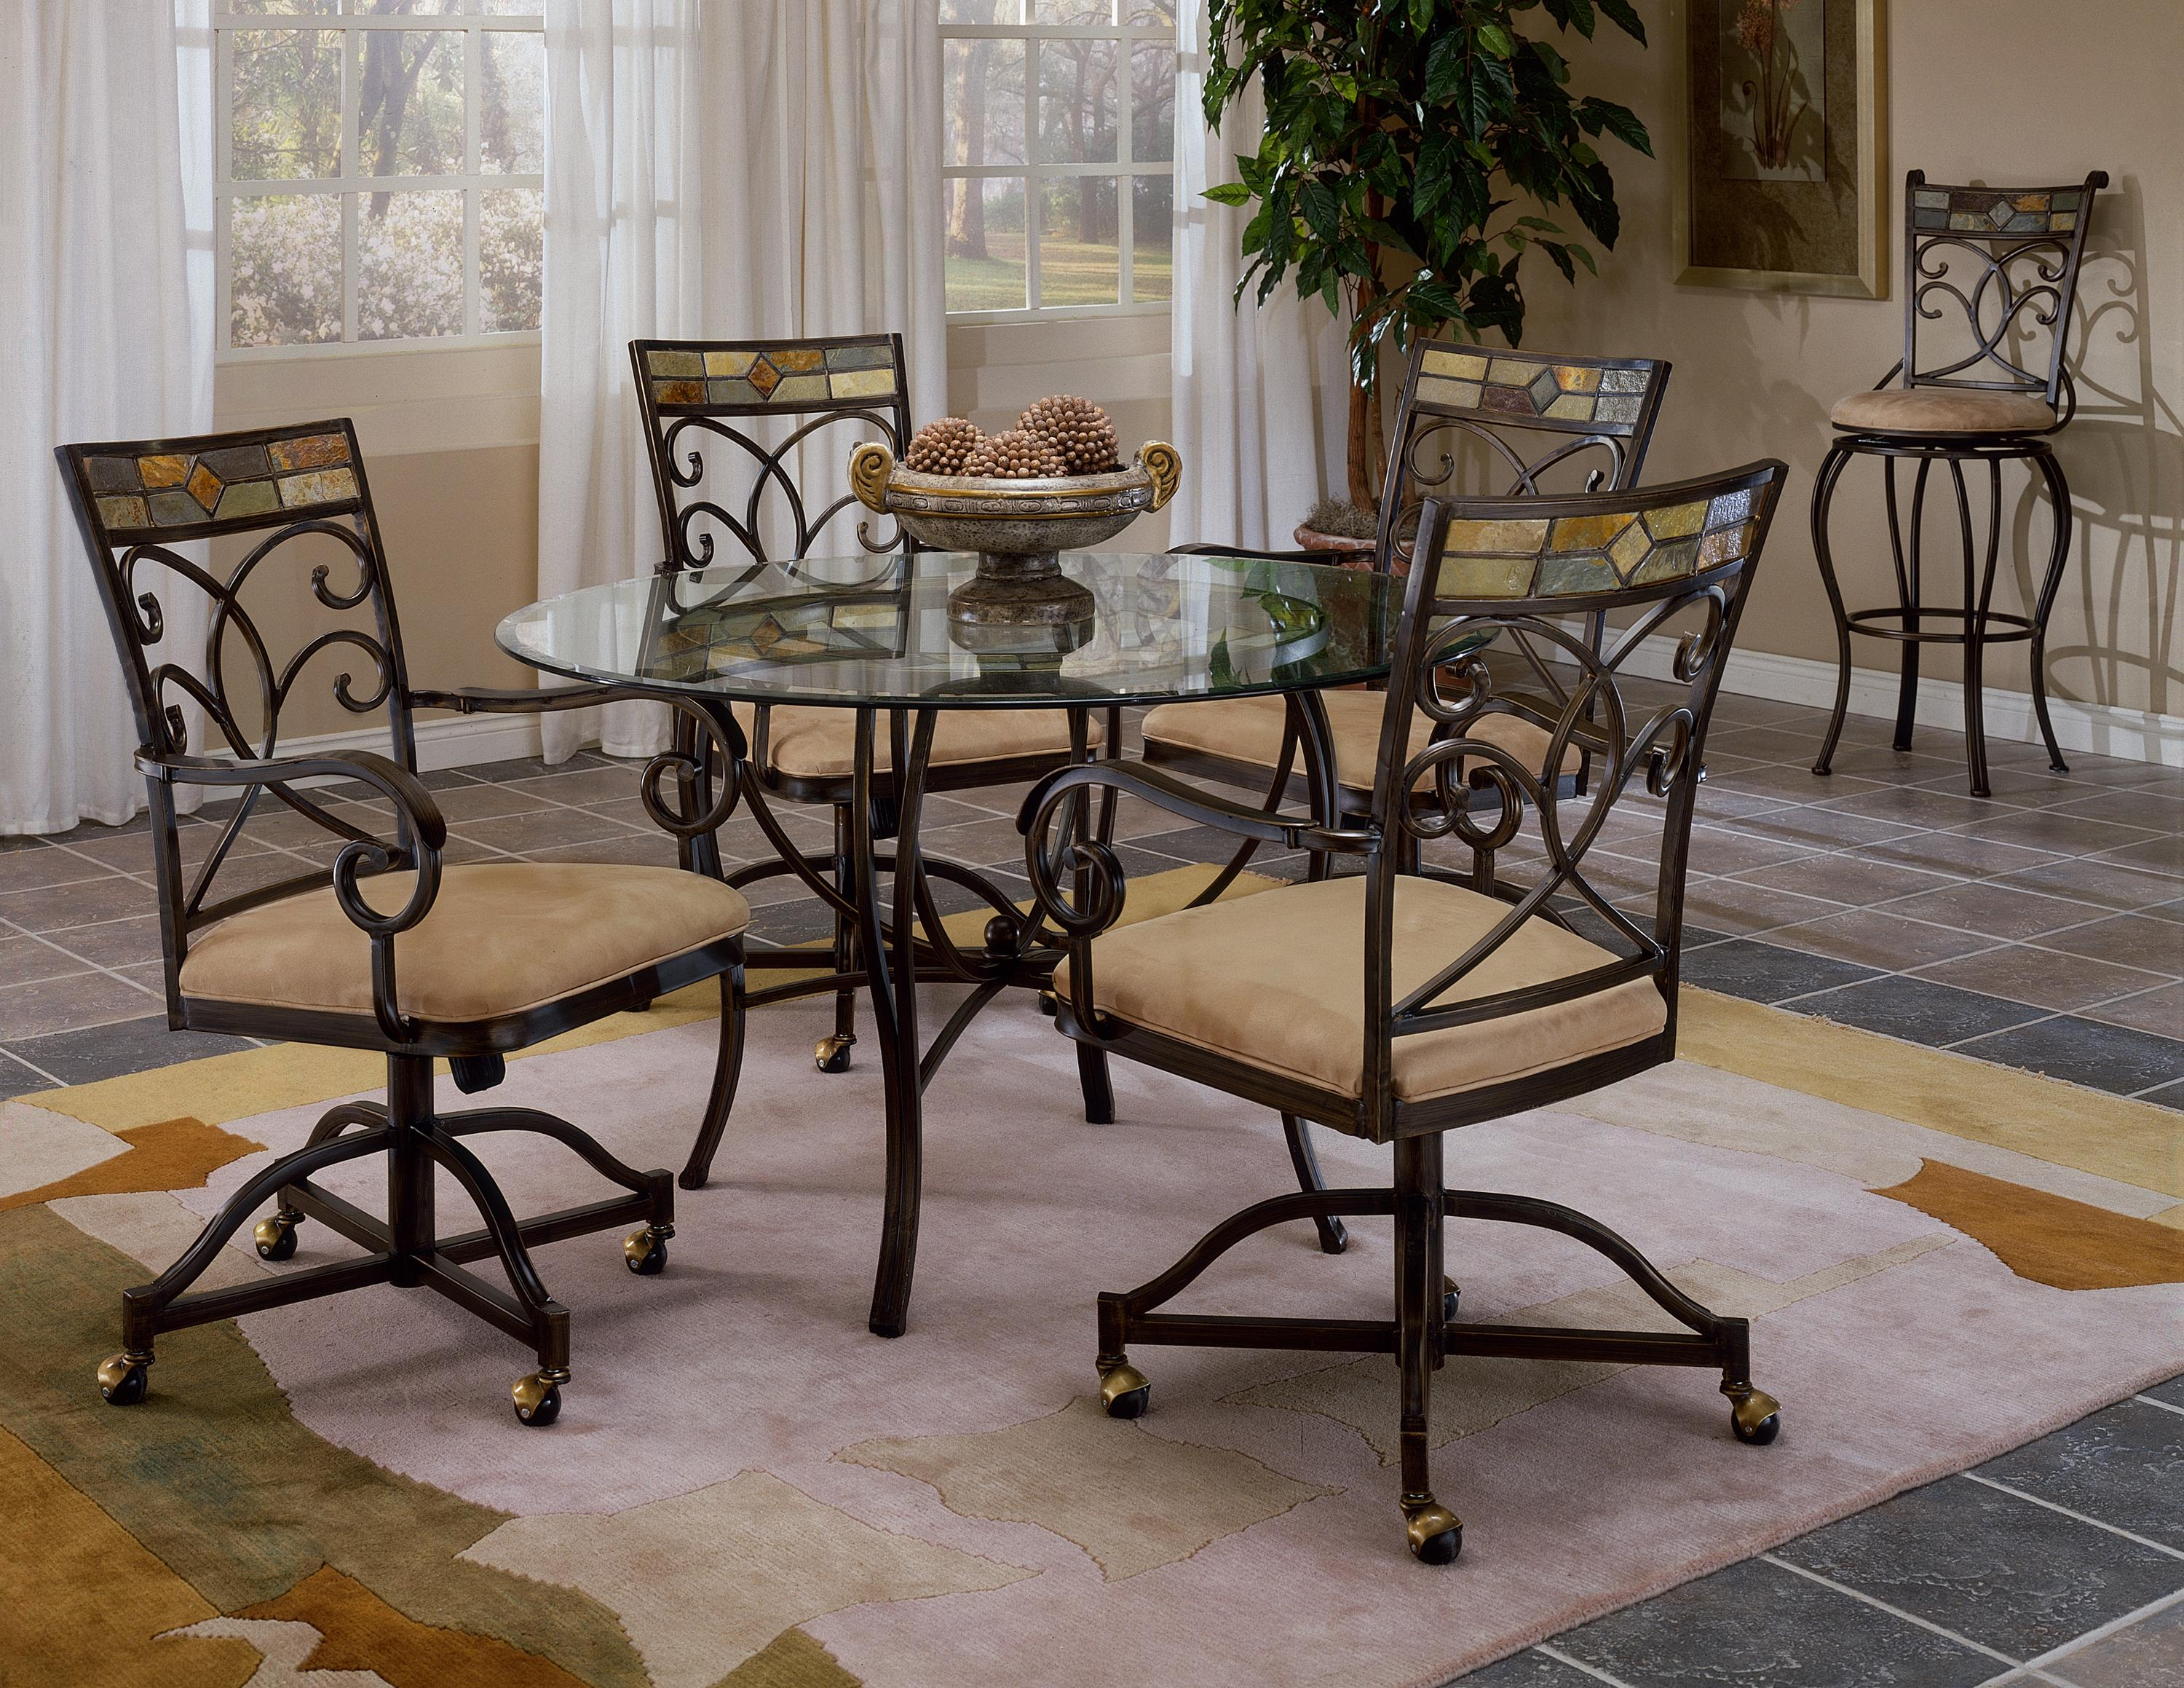 Scrolling 5 Piece Dining Set With Casters By Hillsdale